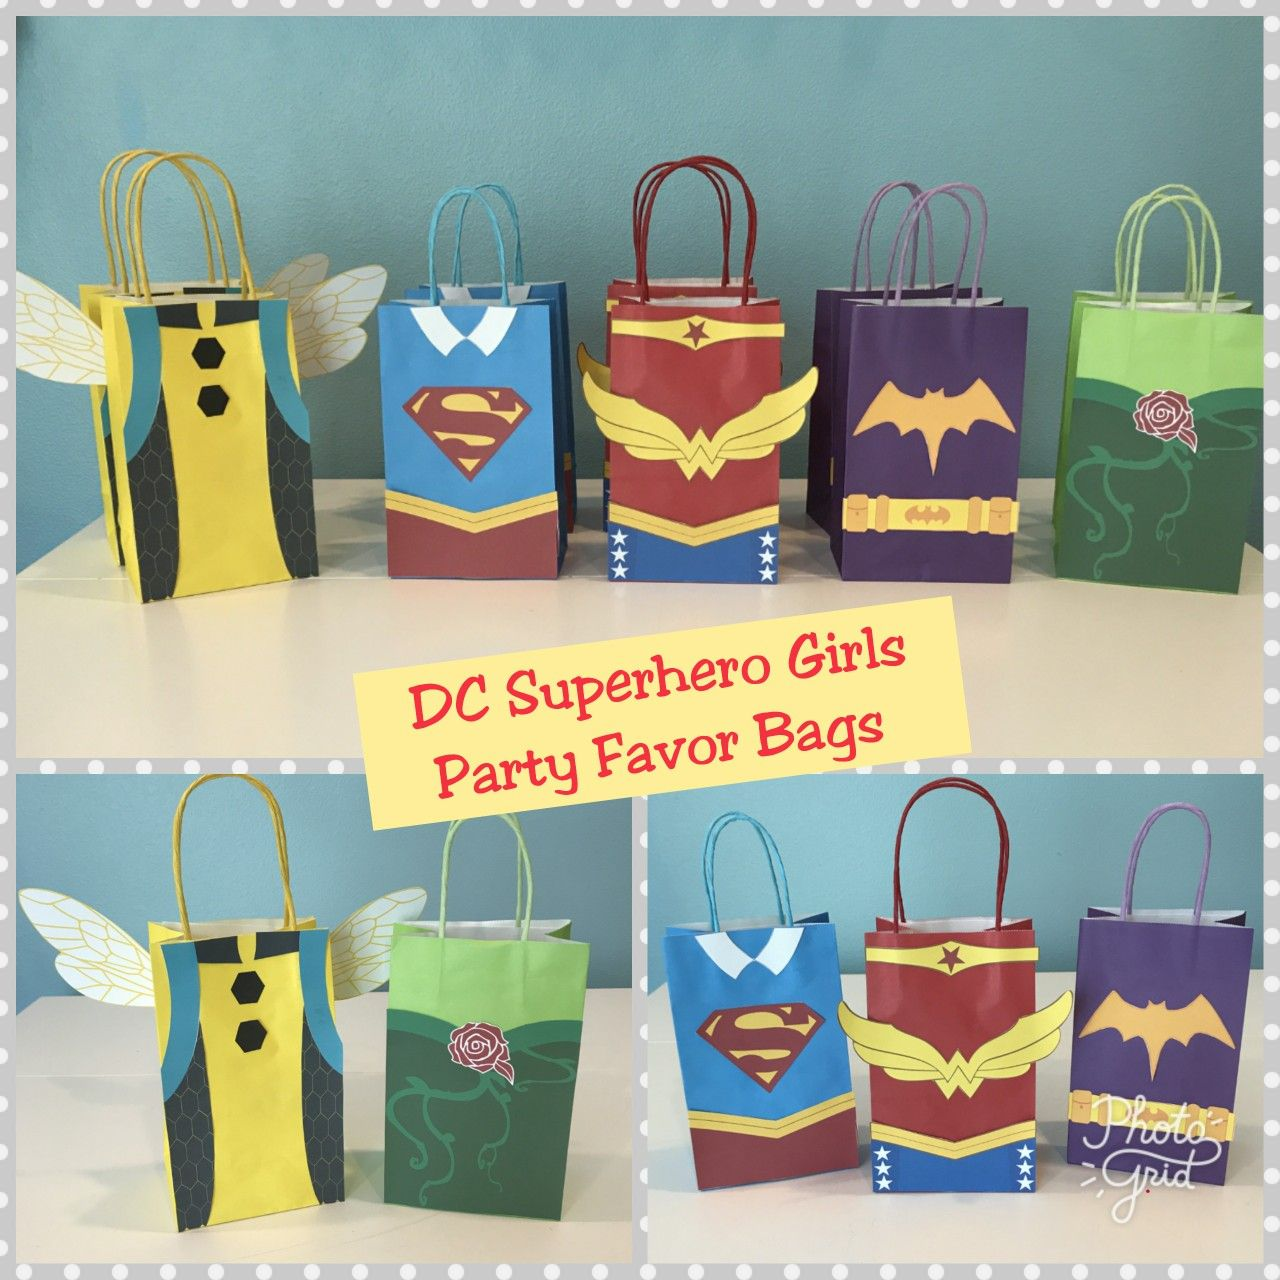 Super Hero Girls Party Favor Bags/ DC Superhero Girls